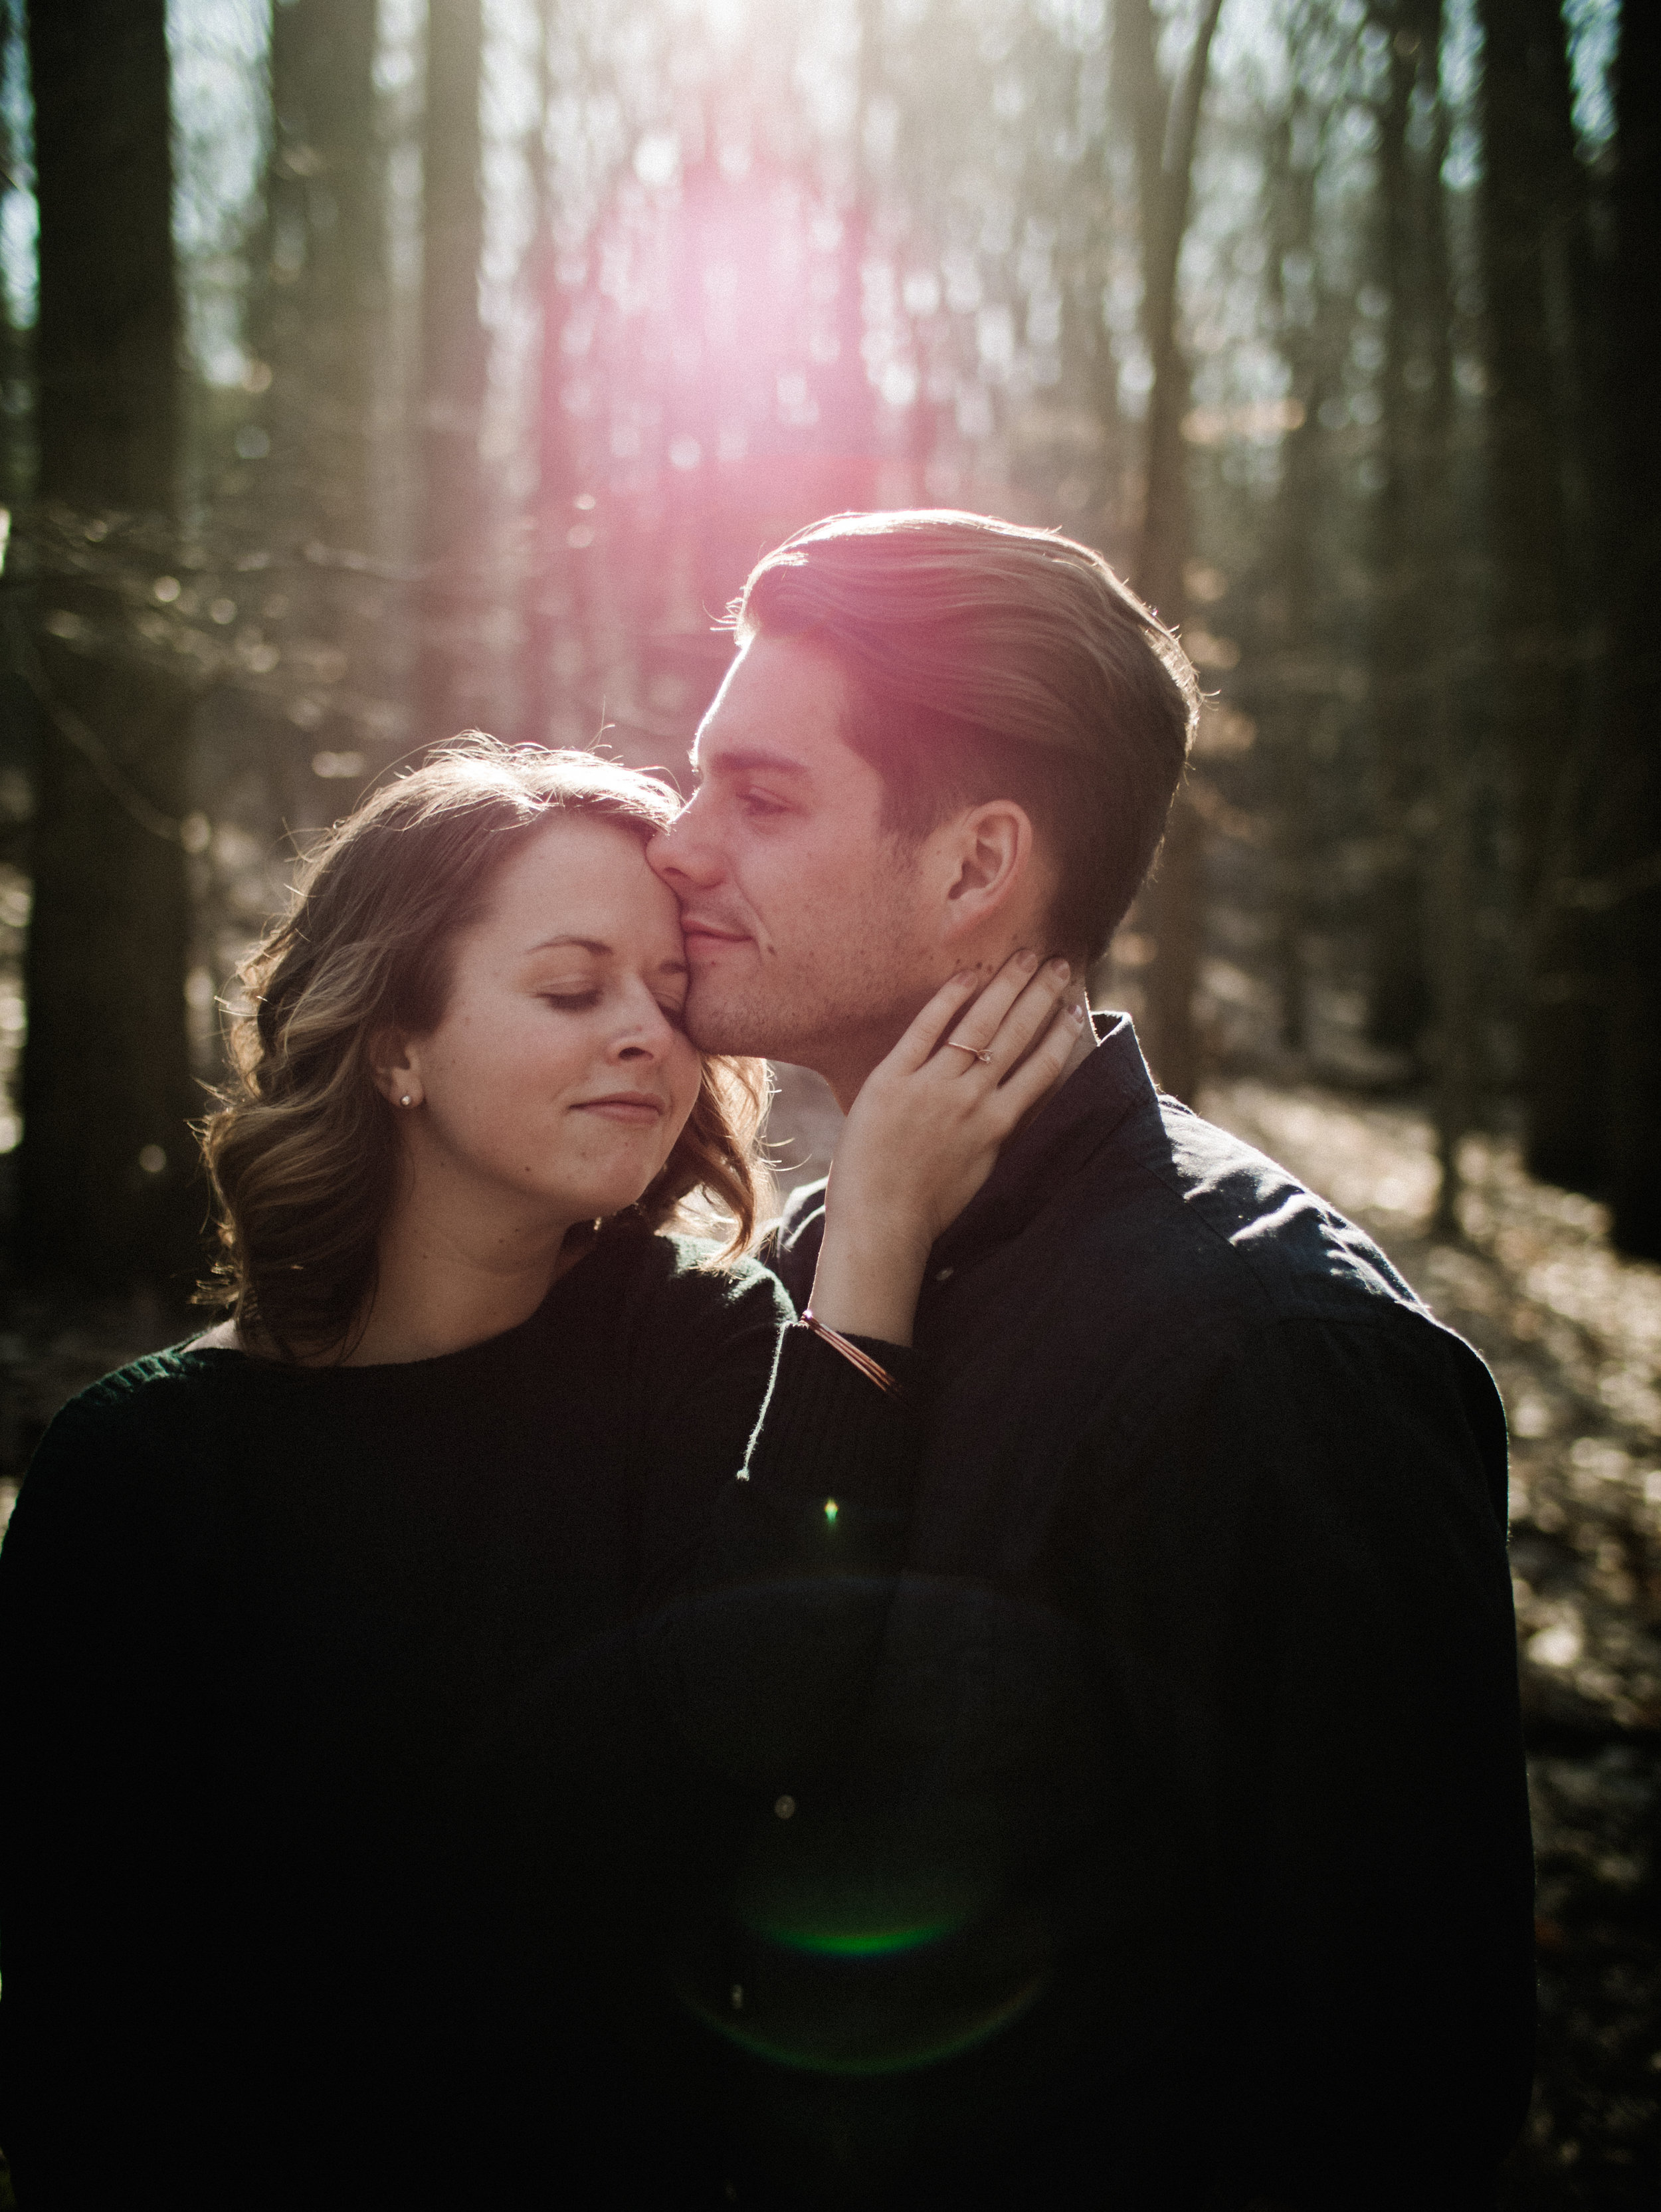 NOAH_PAIGE_LEHMAN_MCGOLDRICK_MICHIGAN_ENGAGEMENT_PHOTOGRAPHY_0030.jpg